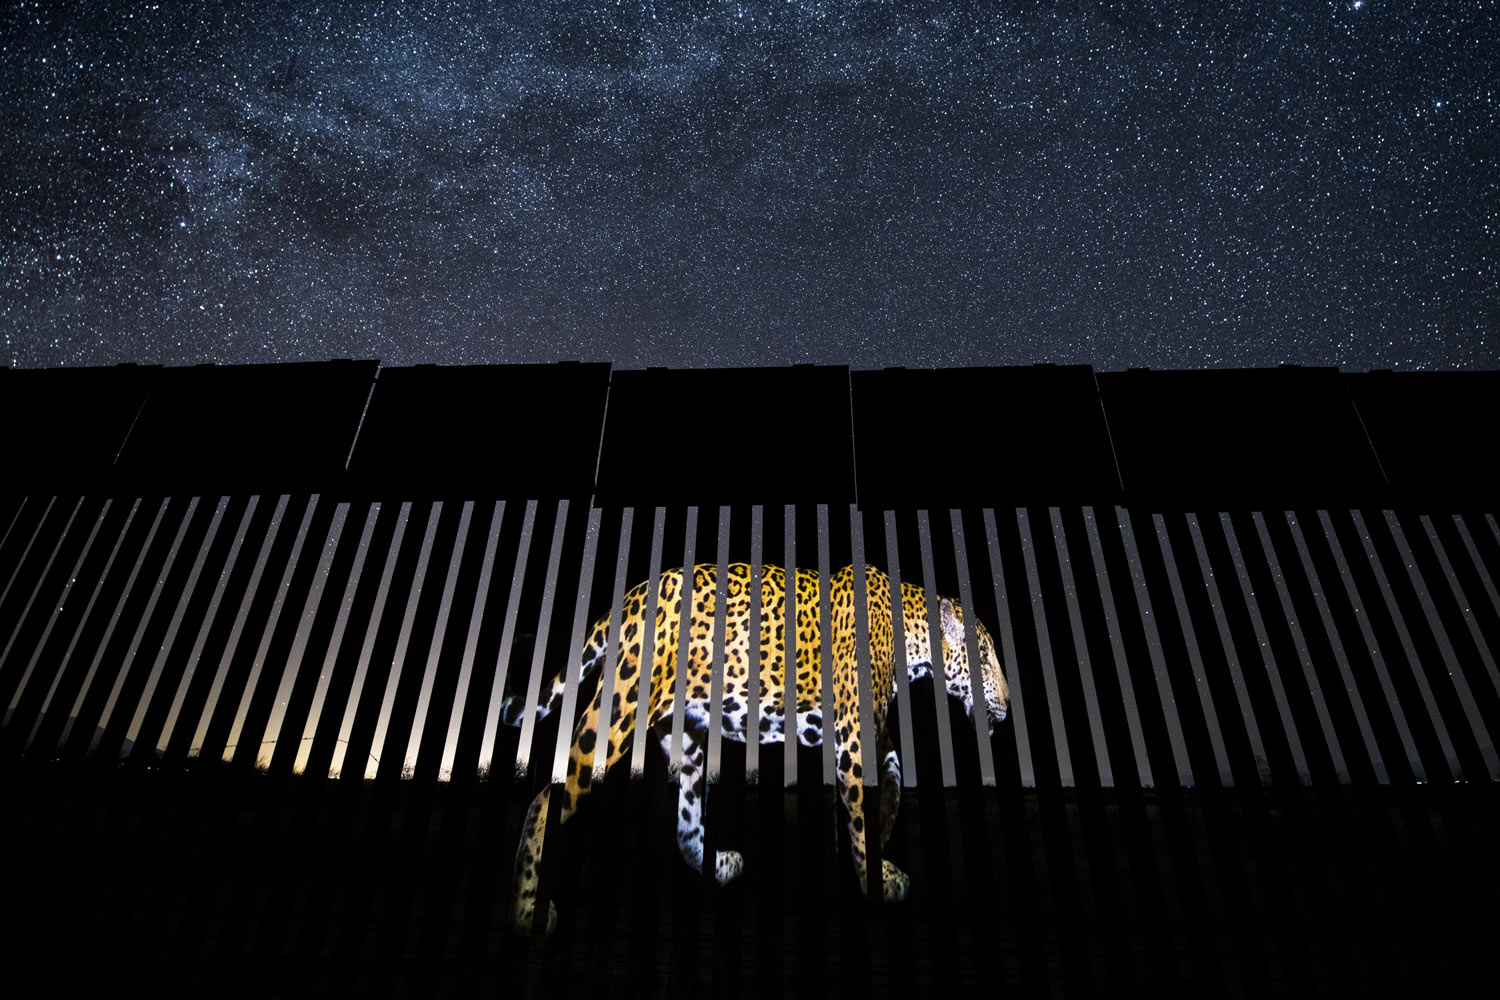 The most astonishing wildlife photos of 2019 range from meme-able to political